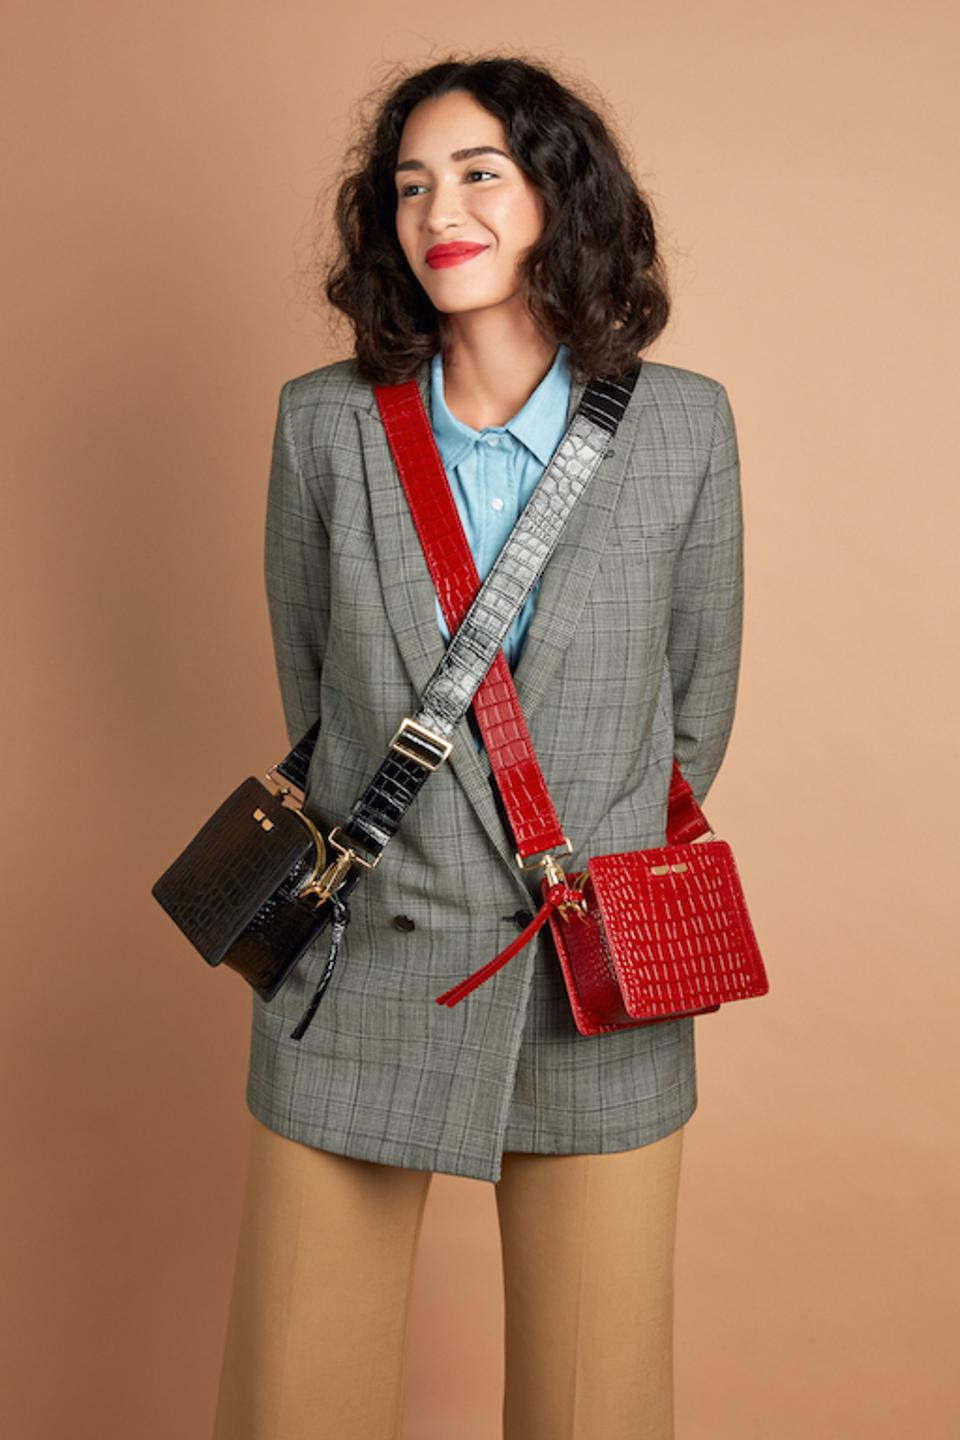 The Fairfax by BENE Bags is a best selling piece that is ideal for the times.